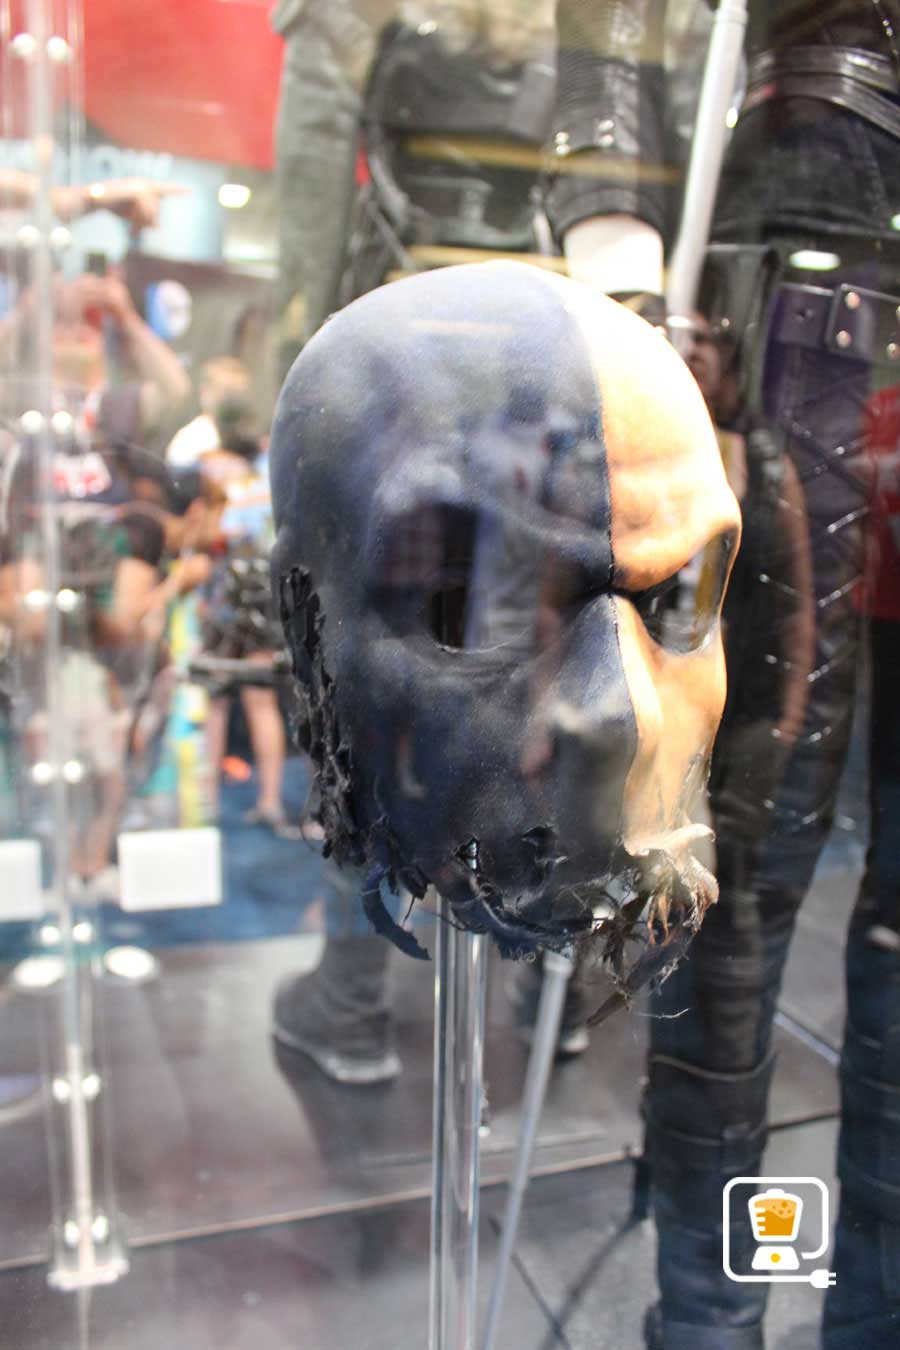 See Flash And Arrow's Amazing Costumes And Gadgets On Display At Comic-Con #32885